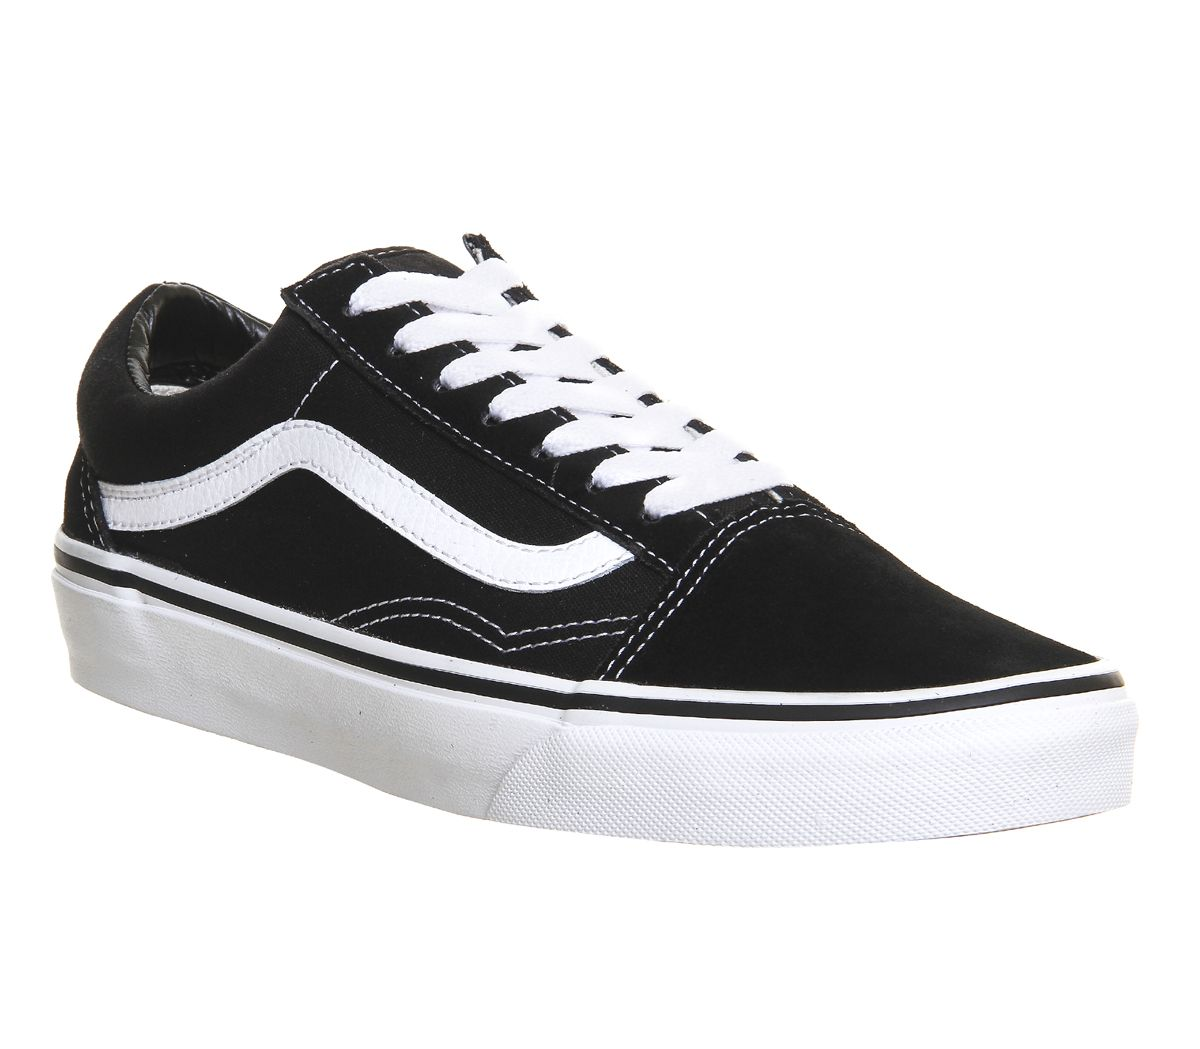 e7c9c7e86d Vans Old Skool Trainers Black - Unisex Sports